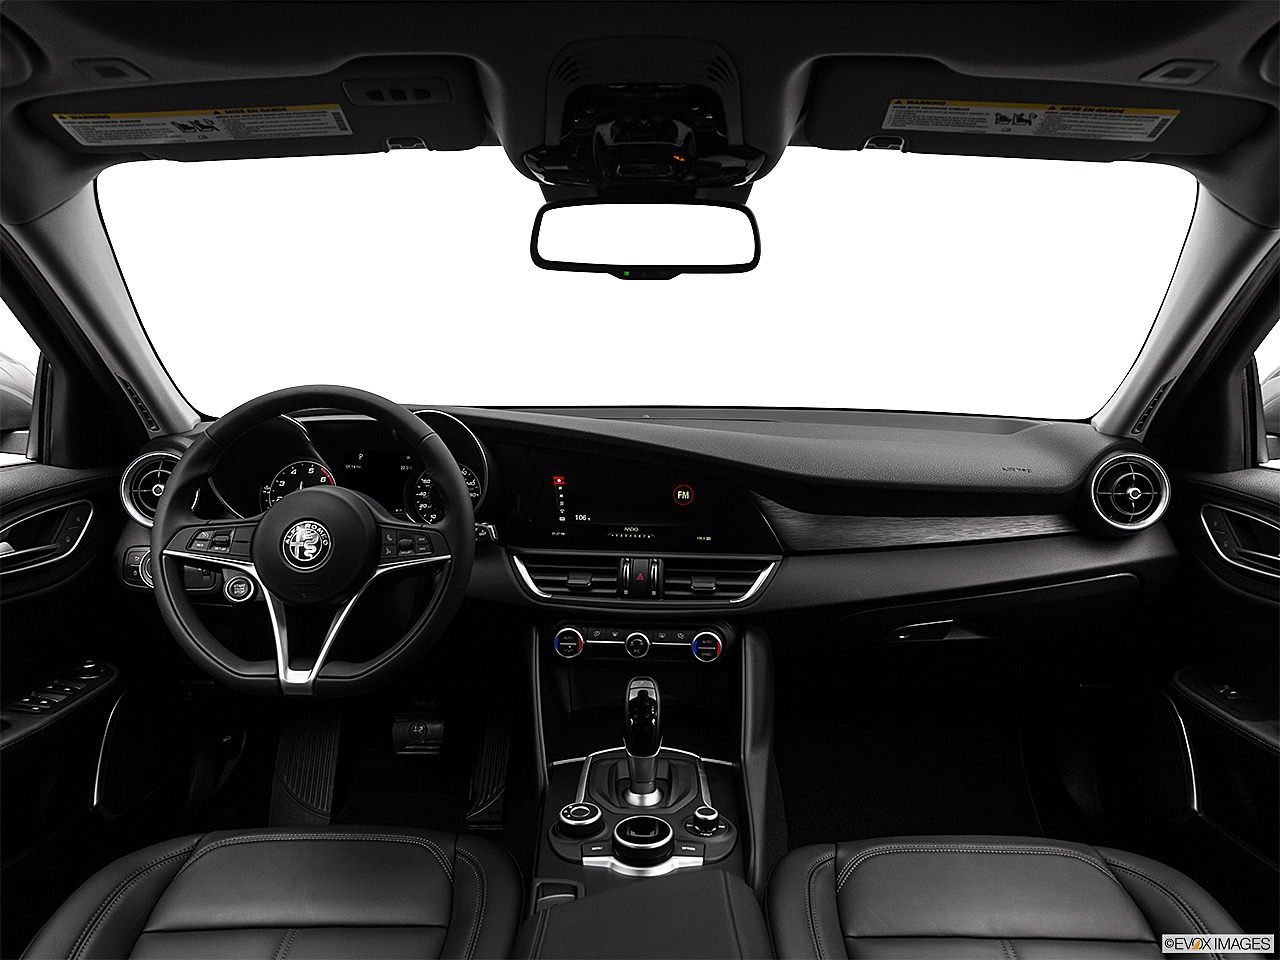 2018 Alfa Romeo Giulia, centered wide dash shot